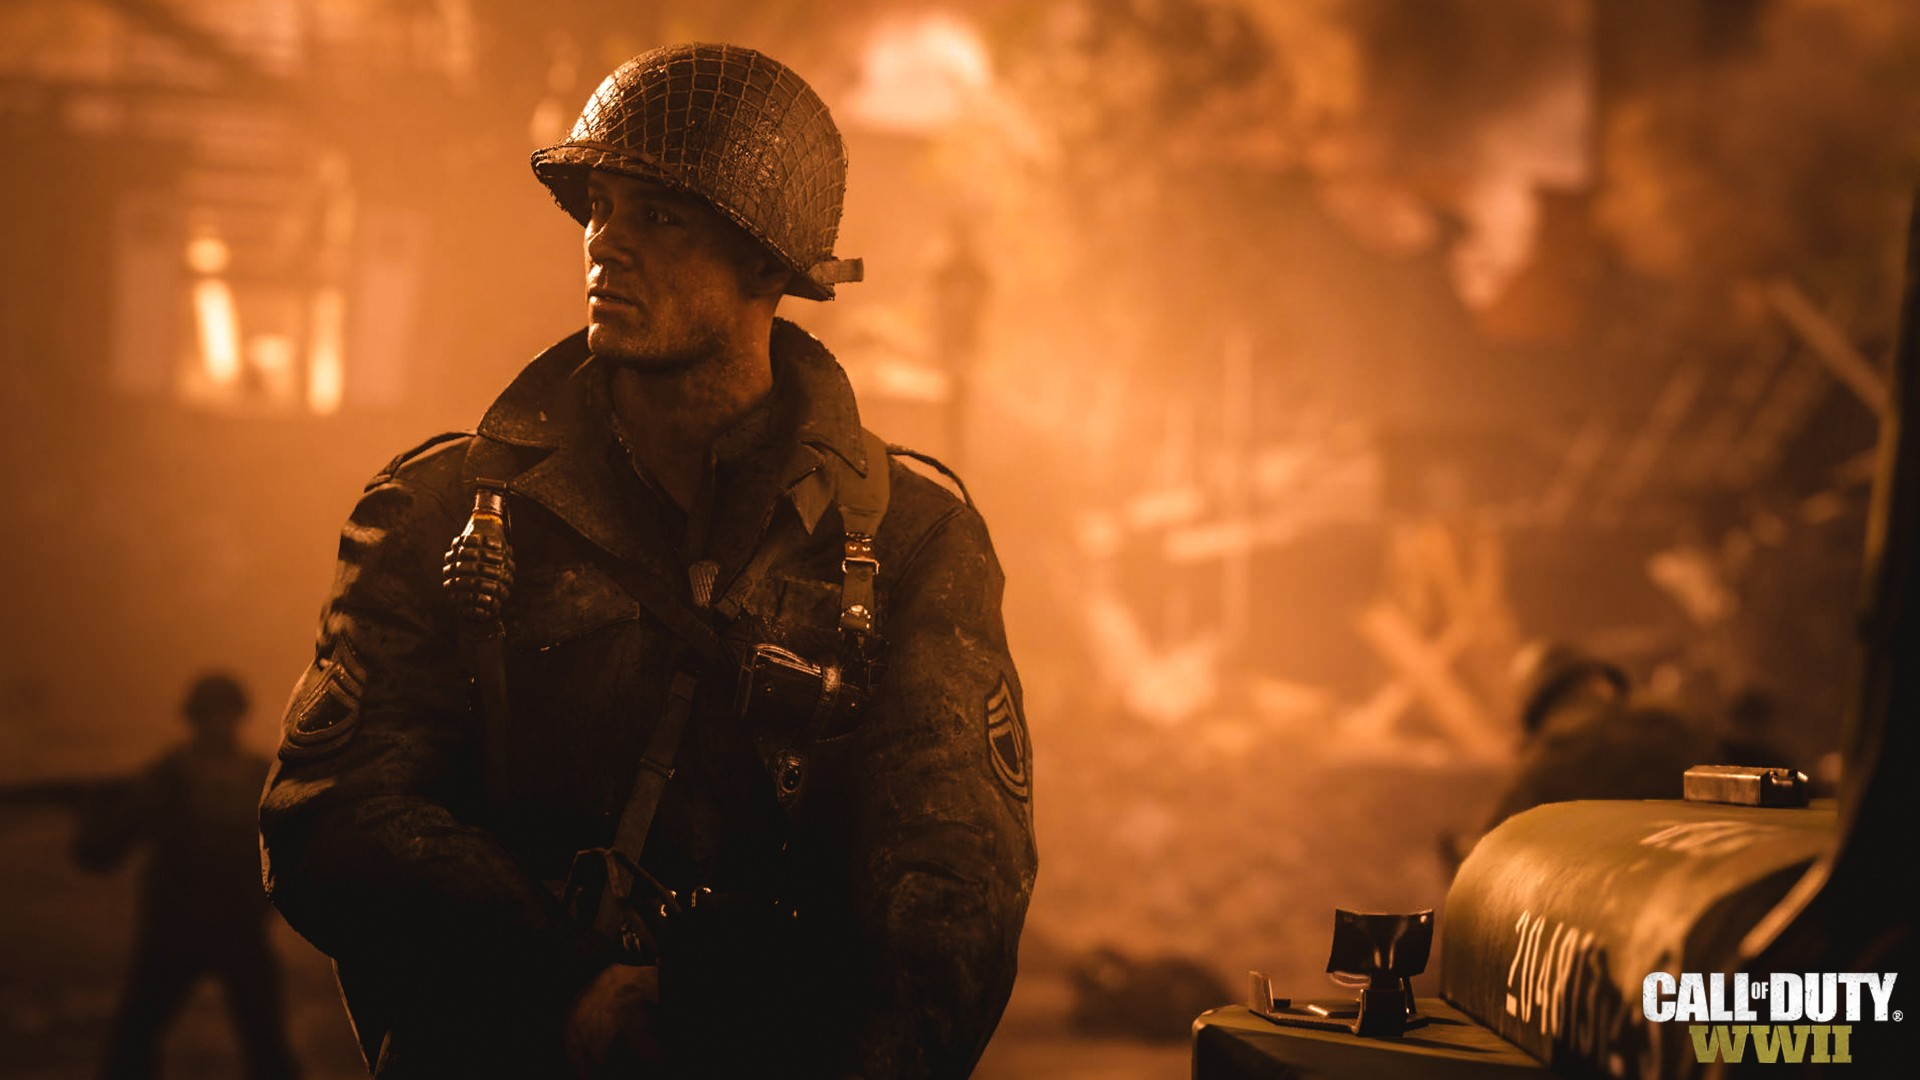 Call of Duty: WWII tops UK Charts, sales up over 50% compared to Infinite Warfare 1